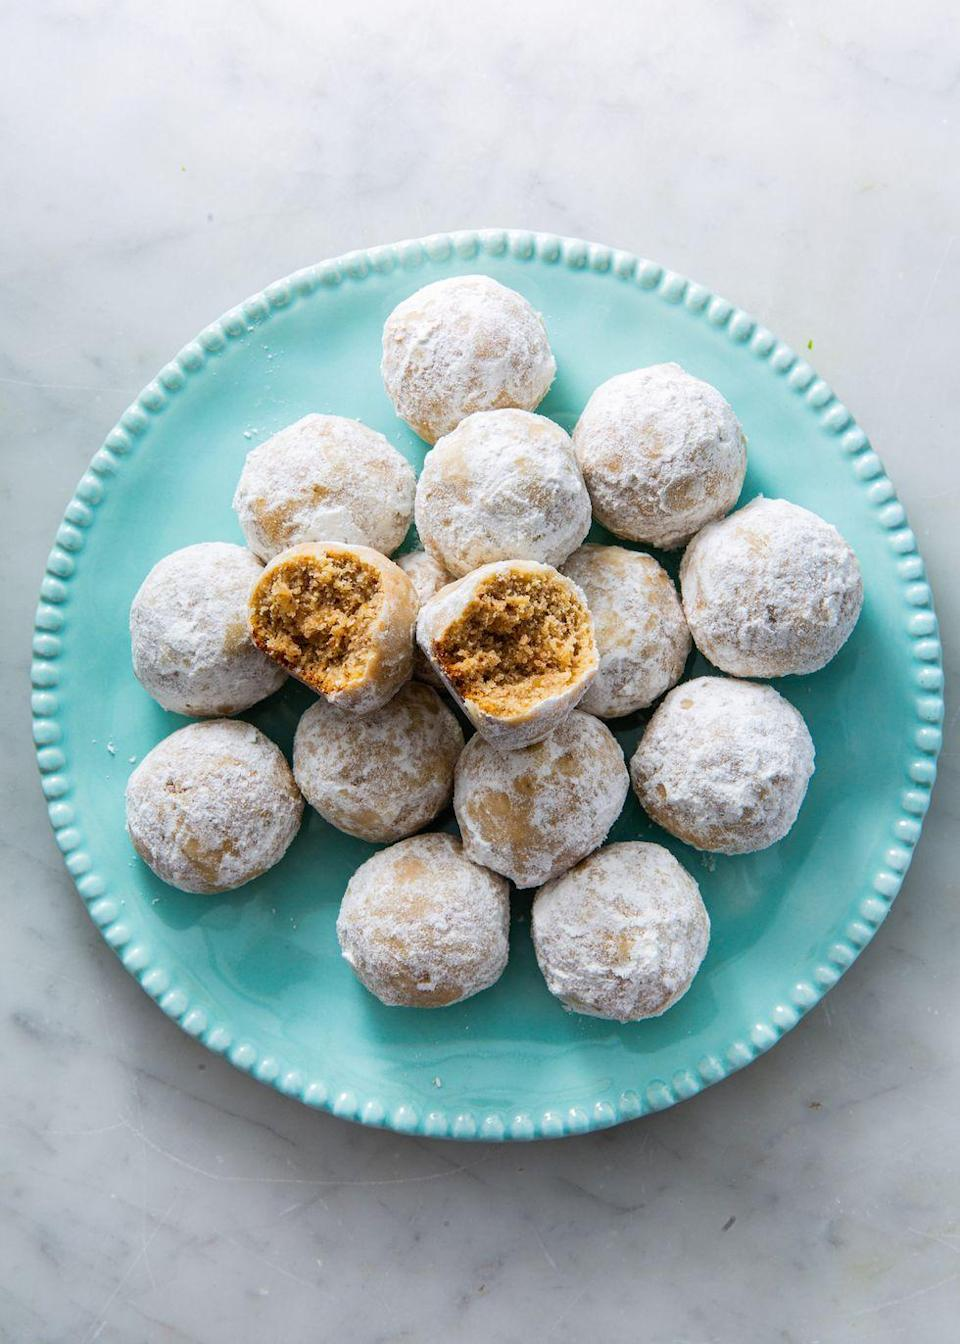 "<p>These snowball cookies from our friends at <a href=""https://www.ketoconnect.net/walnut-snowball-cookies"" rel=""nofollow noopener"" target=""_blank"" data-ylk=""slk:Keto Connect"" class=""link rapid-noclick-resp"">Keto Connect</a> are big on walnut flavour, just how we like them. A perfect recipe to make with kids!</p><p>Get the <a href=""https://www.delish.com/uk/cooking/recipes/a30166790/walnut-snowball-cookies-recipe/"" rel=""nofollow noopener"" target=""_blank"" data-ylk=""slk:Walnut Snowball Cookies"" class=""link rapid-noclick-resp"">Walnut Snowball Cookies</a> recipe.</p>"